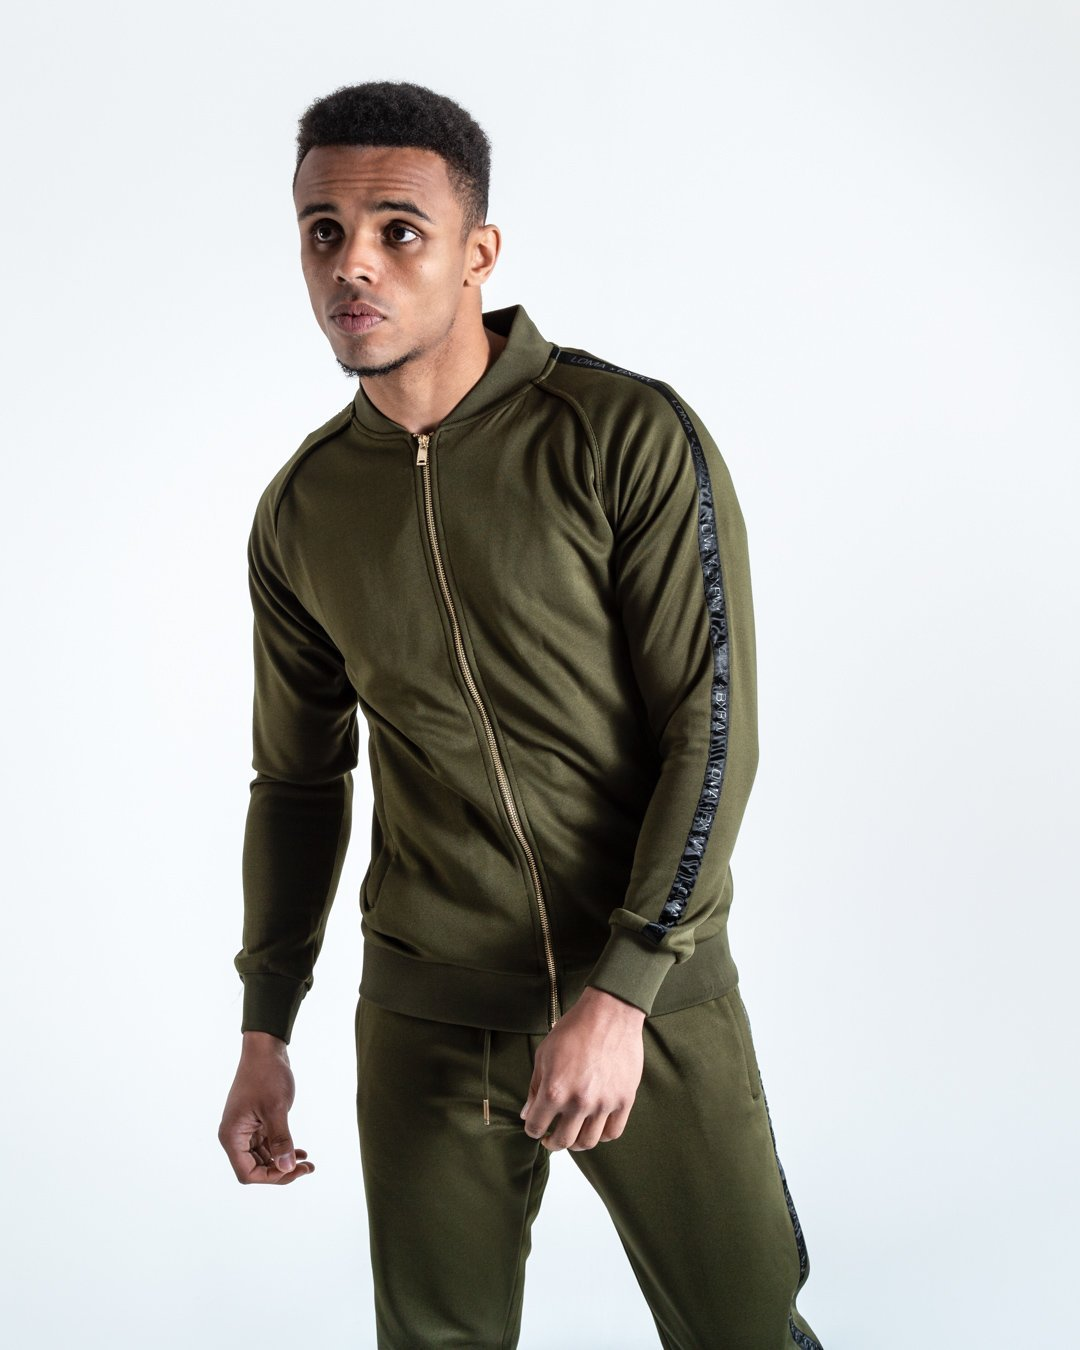 LOMA WHITAKER JACKET - OLIVE/BLACK - Pandemic Fight Gear Inc.